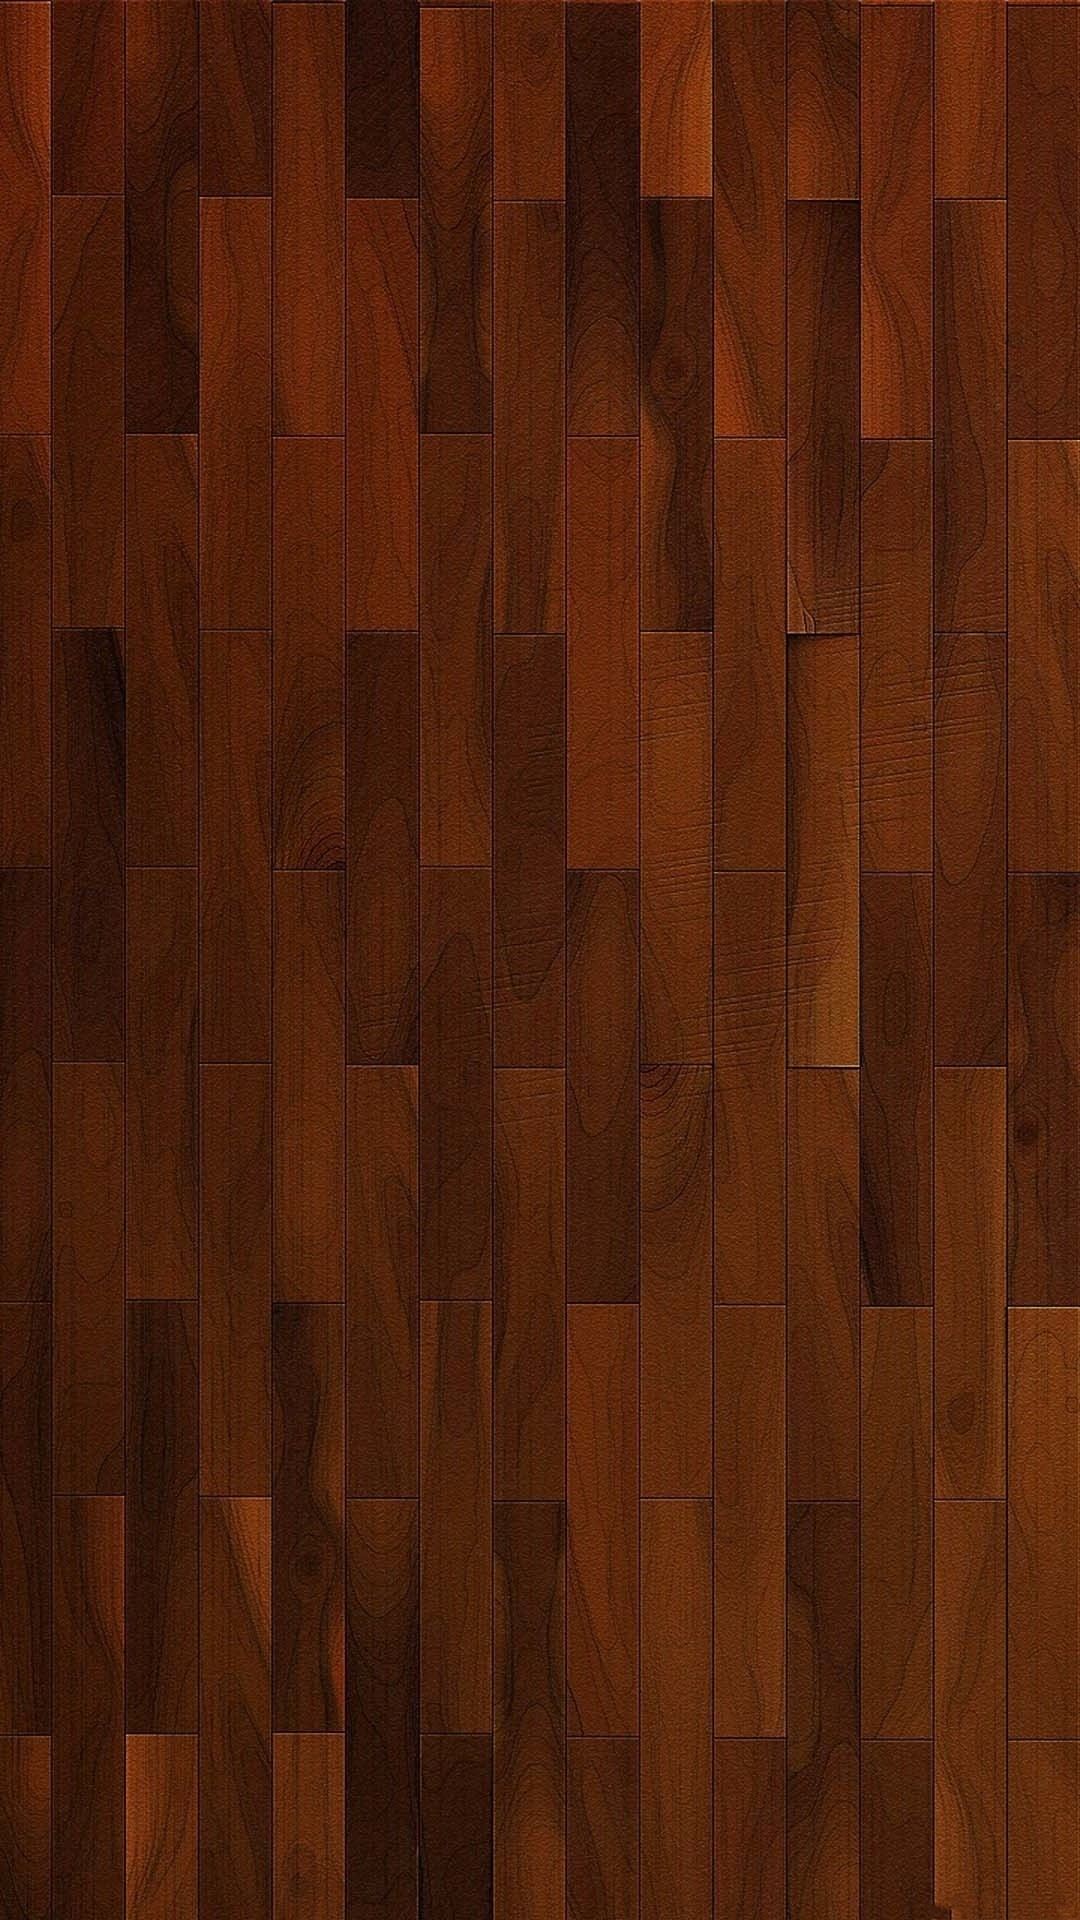 Hd Supreme Wallpaper Iphone X Wood Floor Wallpaper 65 Images